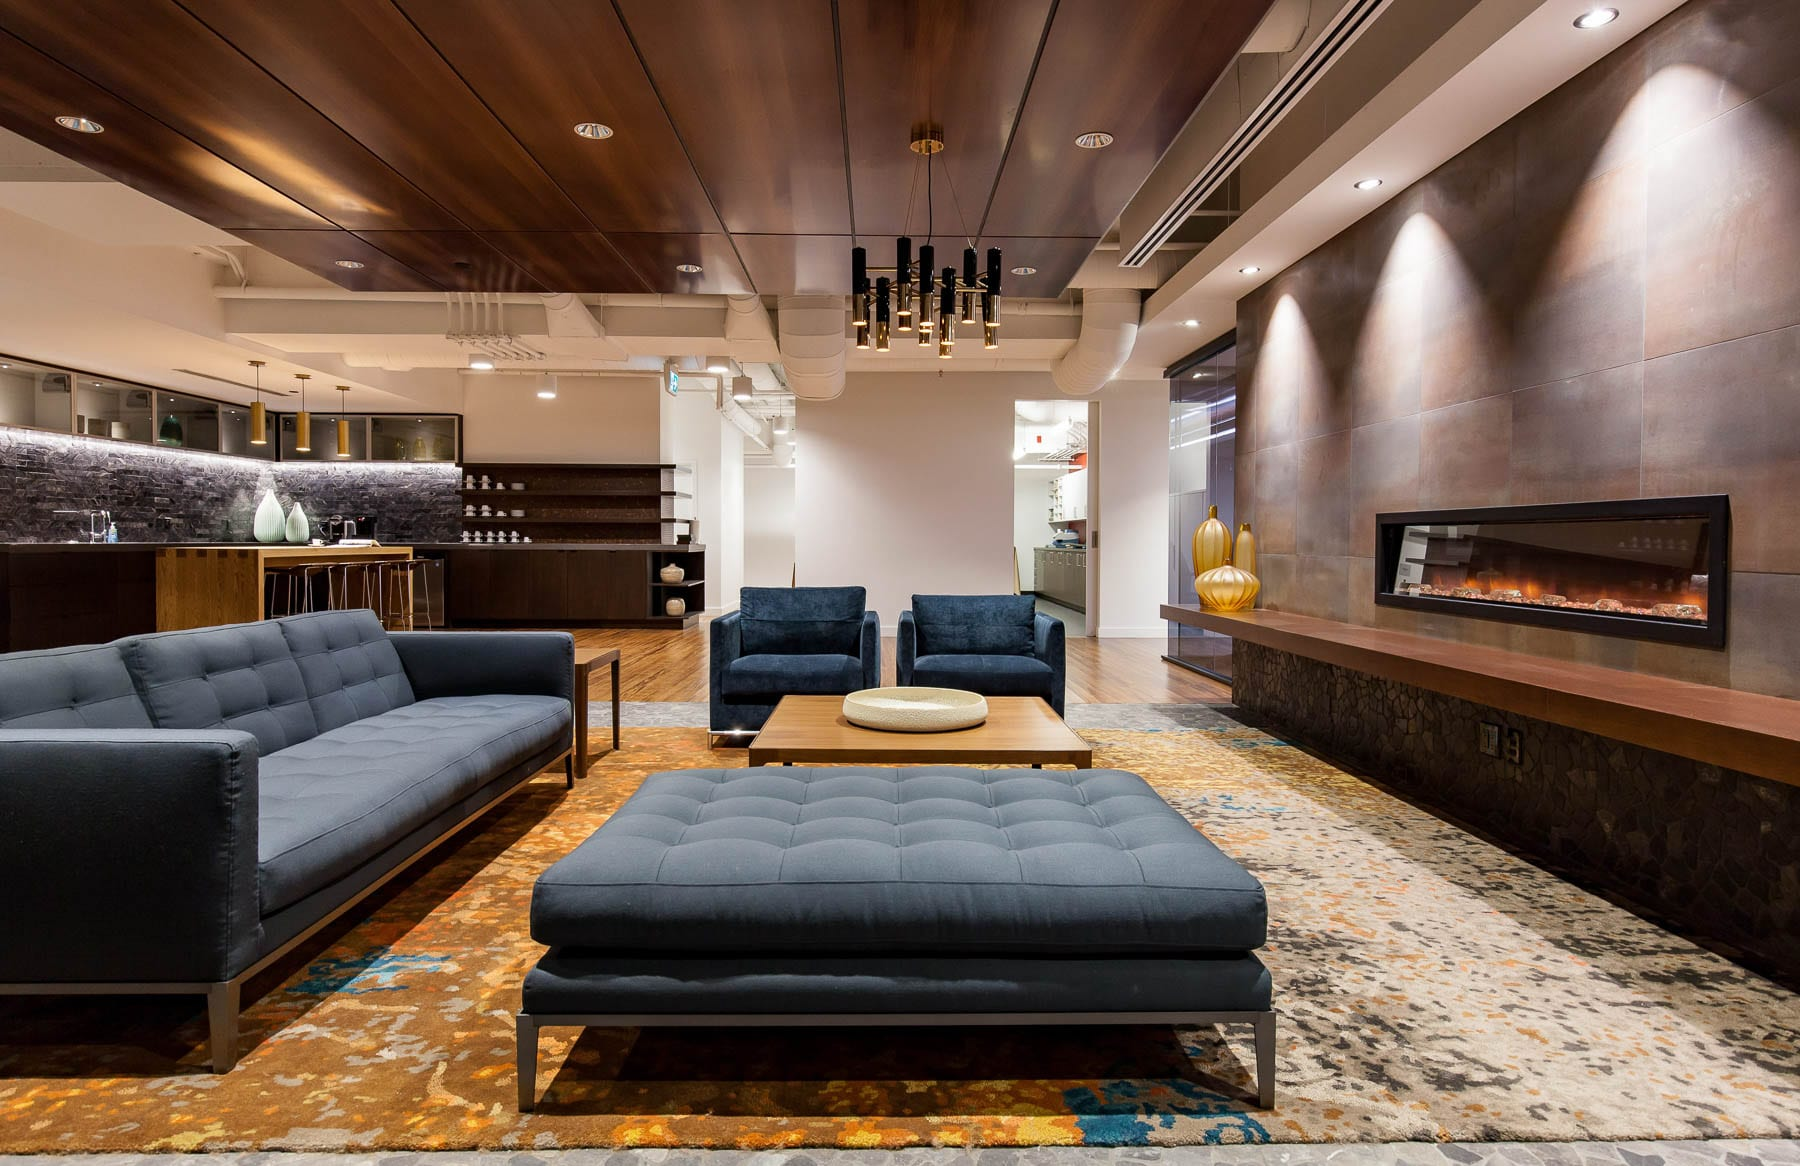 Contemporary Office Design at MIABC - living room style lounge with fireplace